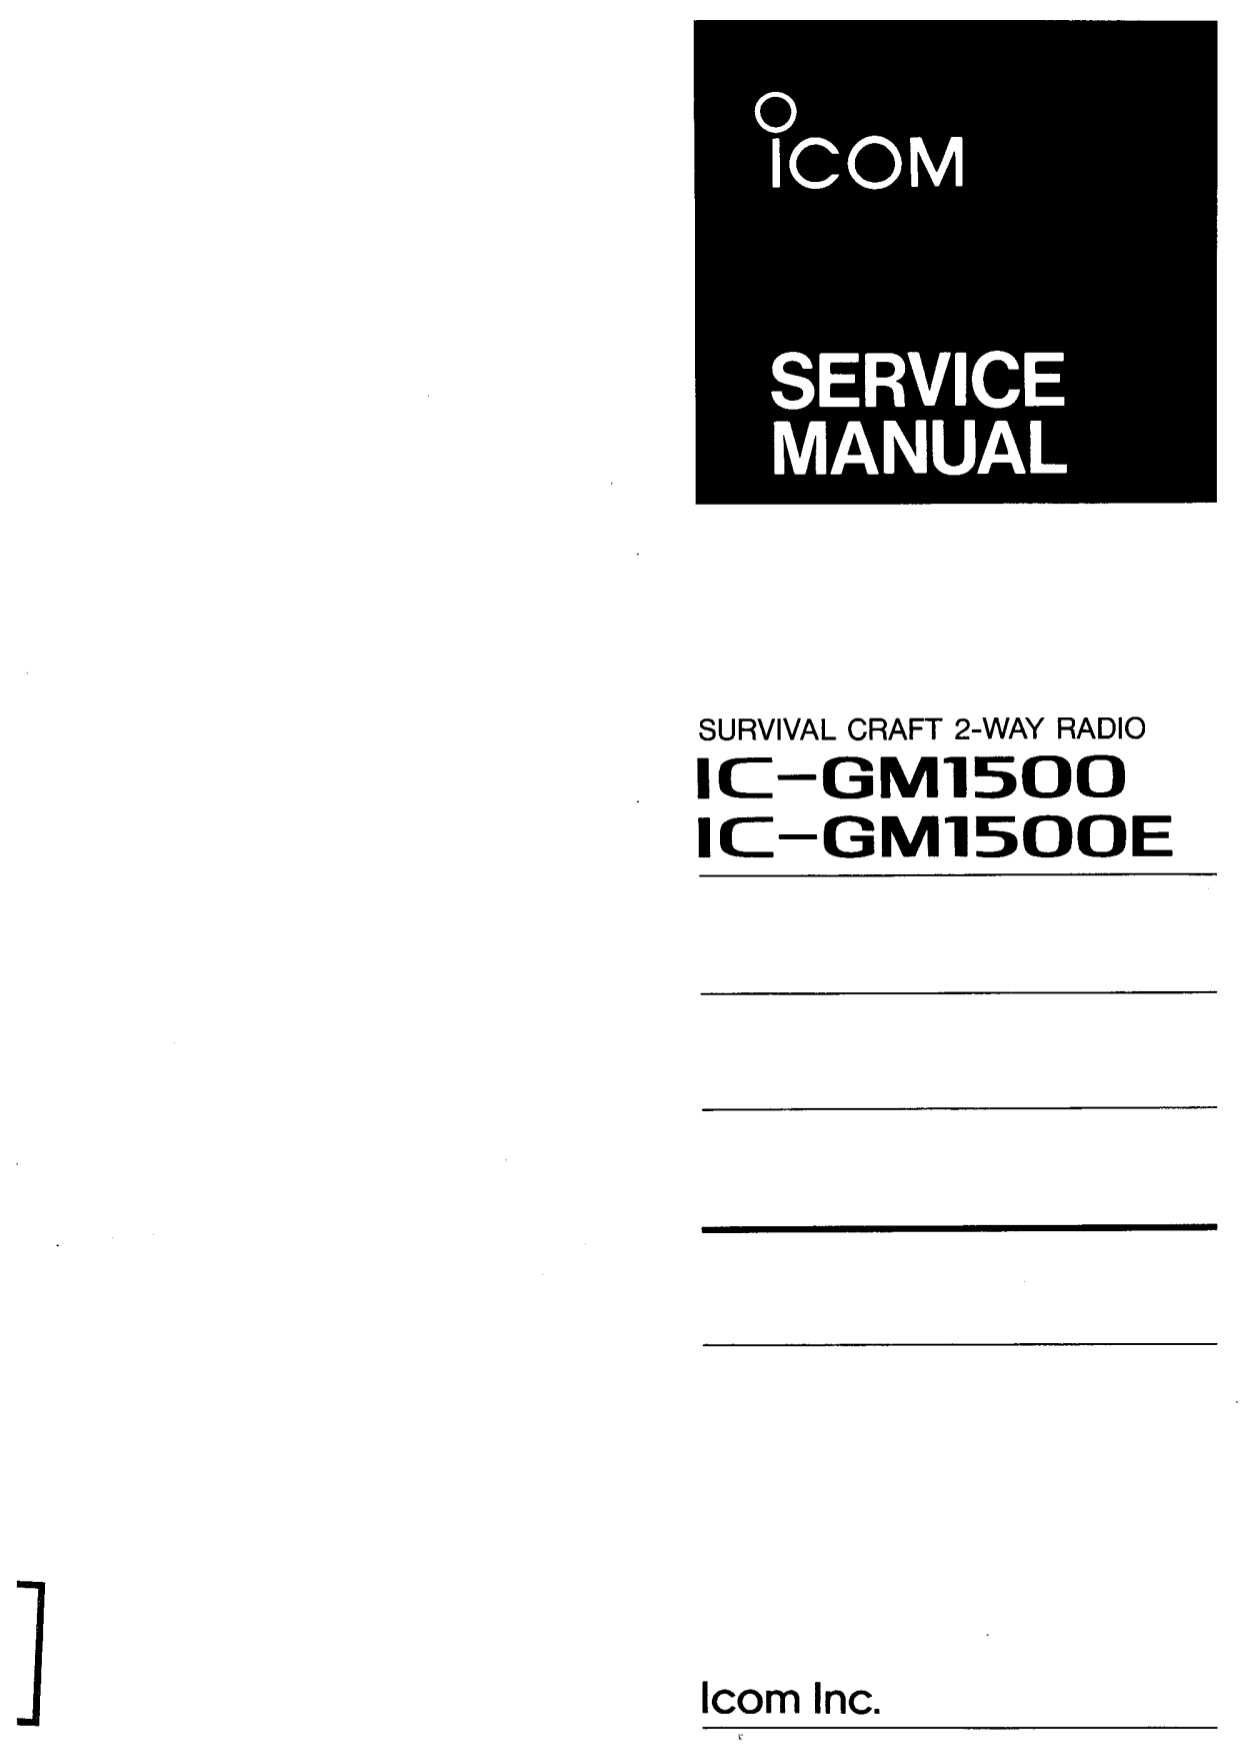 Download Ae101 Service Manual Pdf free software